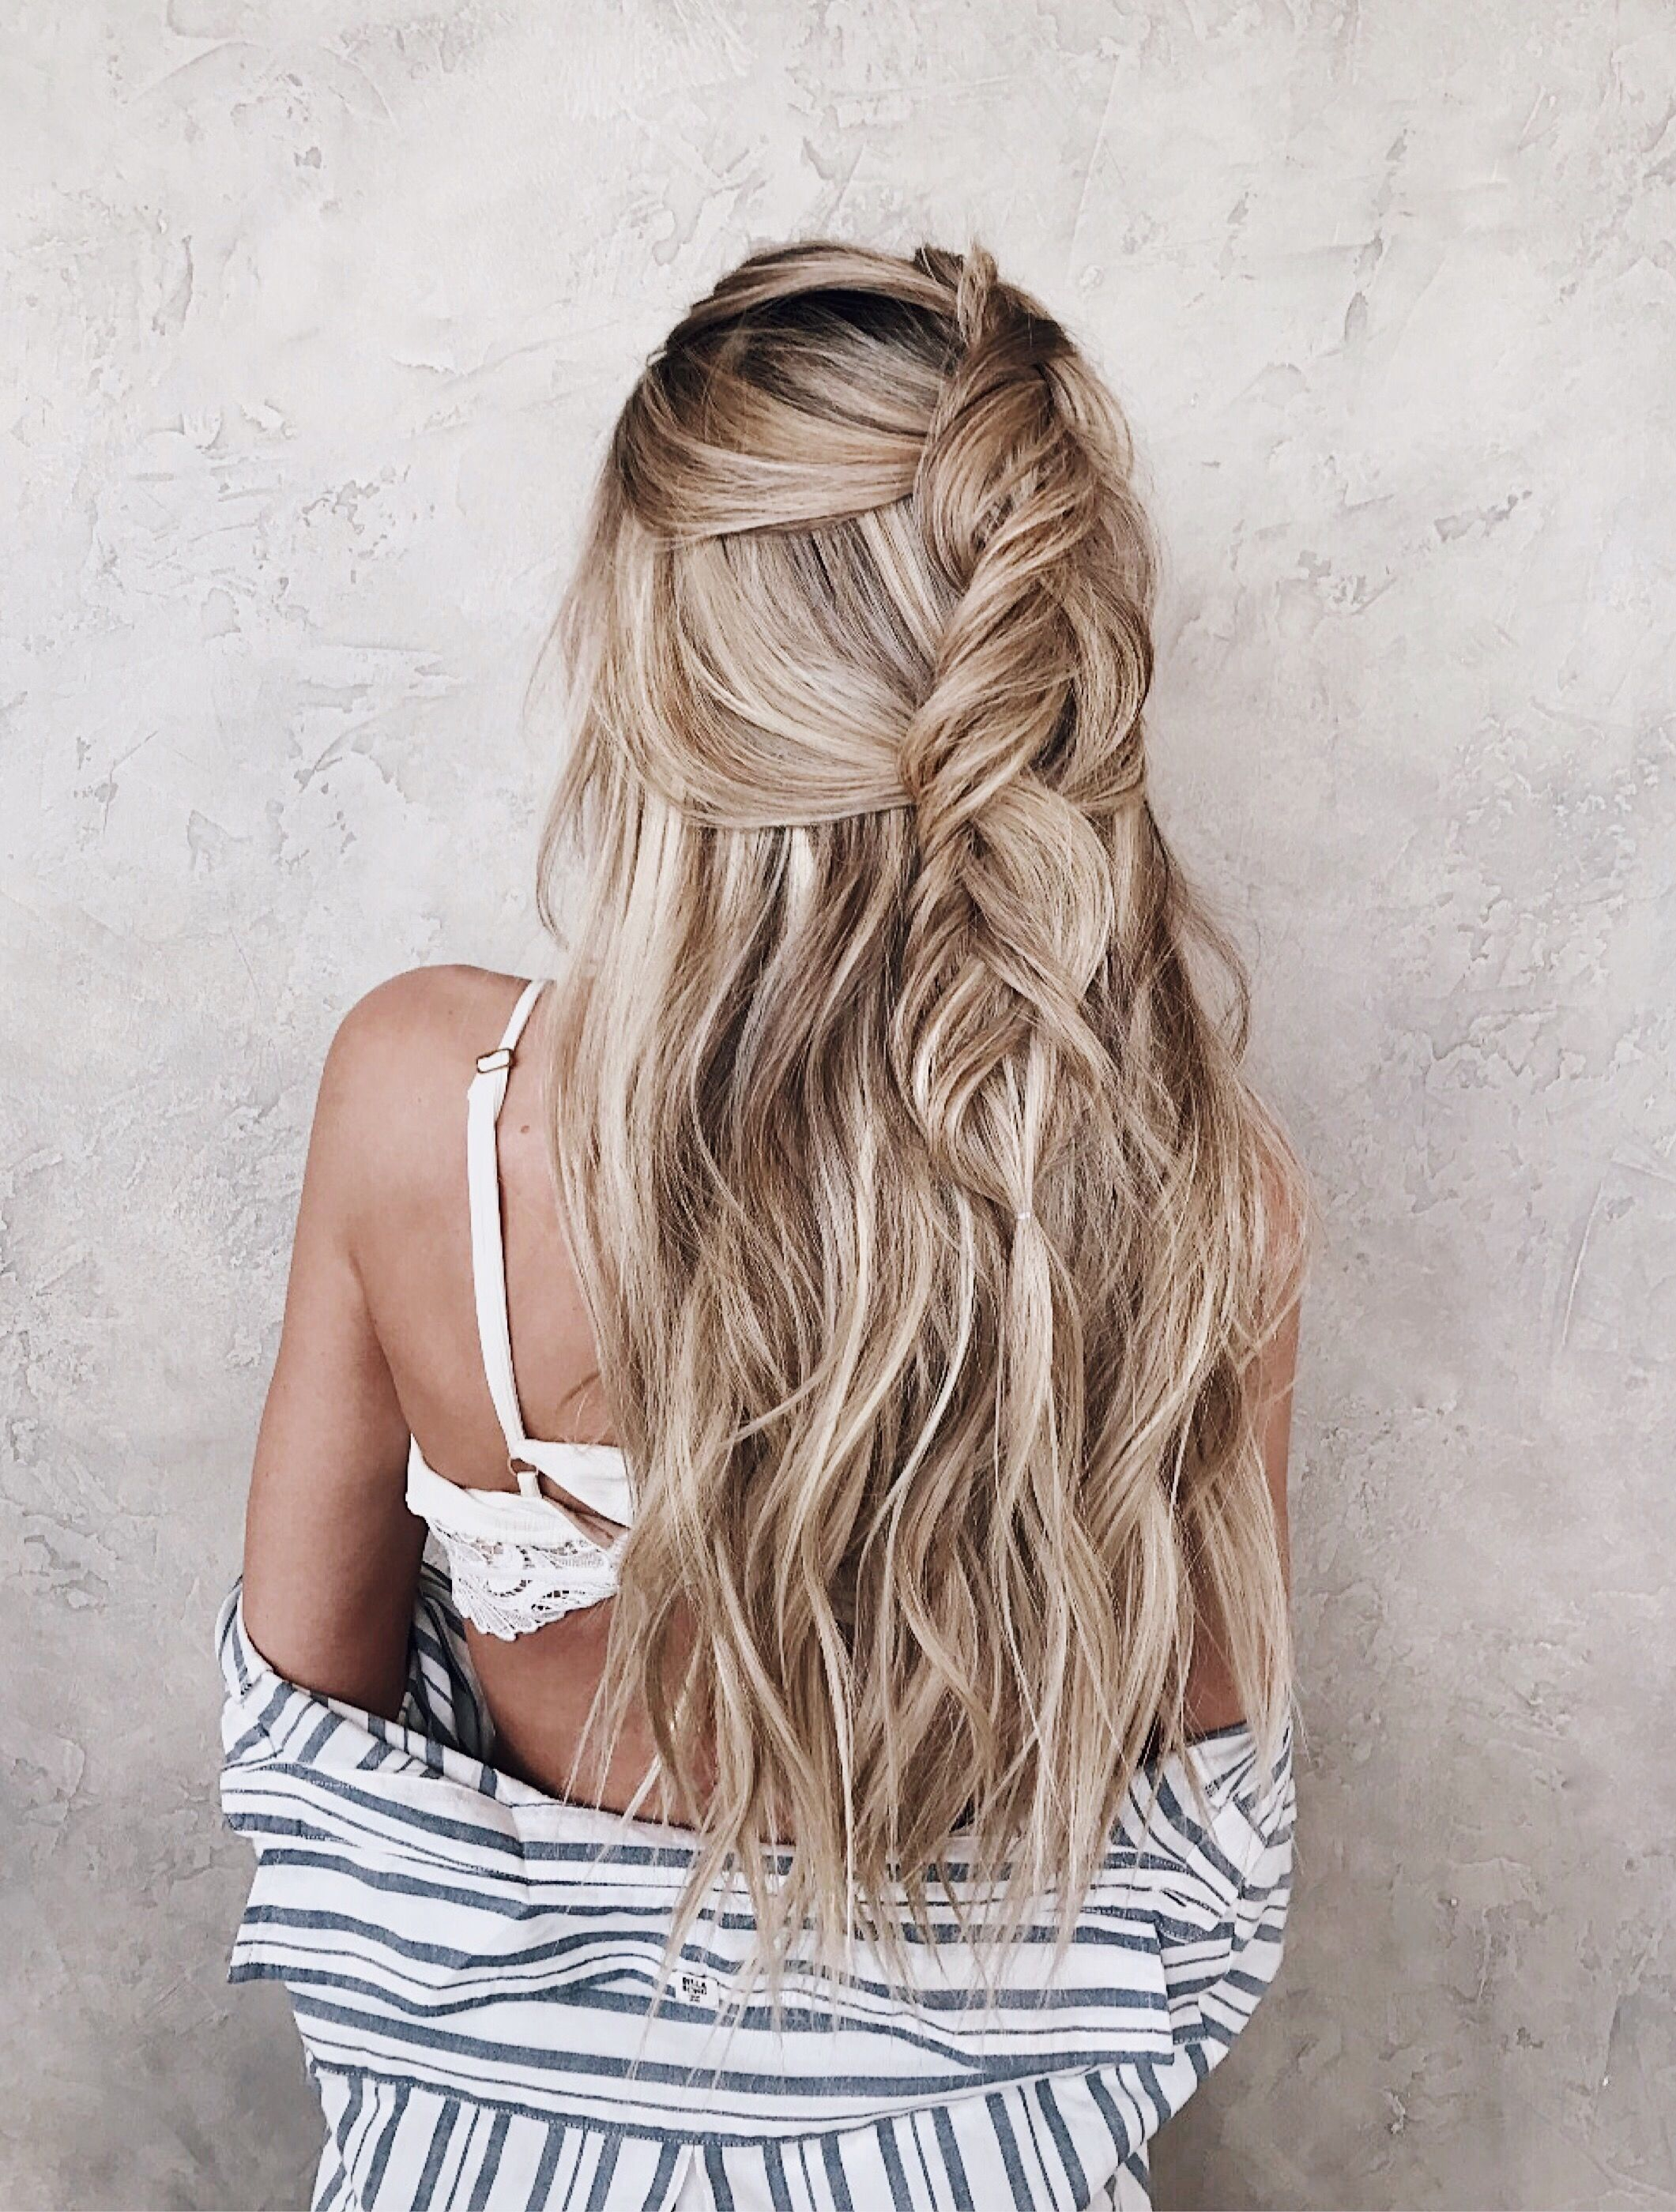 Beach Hairstyles Fascinating Loose Blond Braid Half Up Hairstyle Beach Hair Fleurpinterest